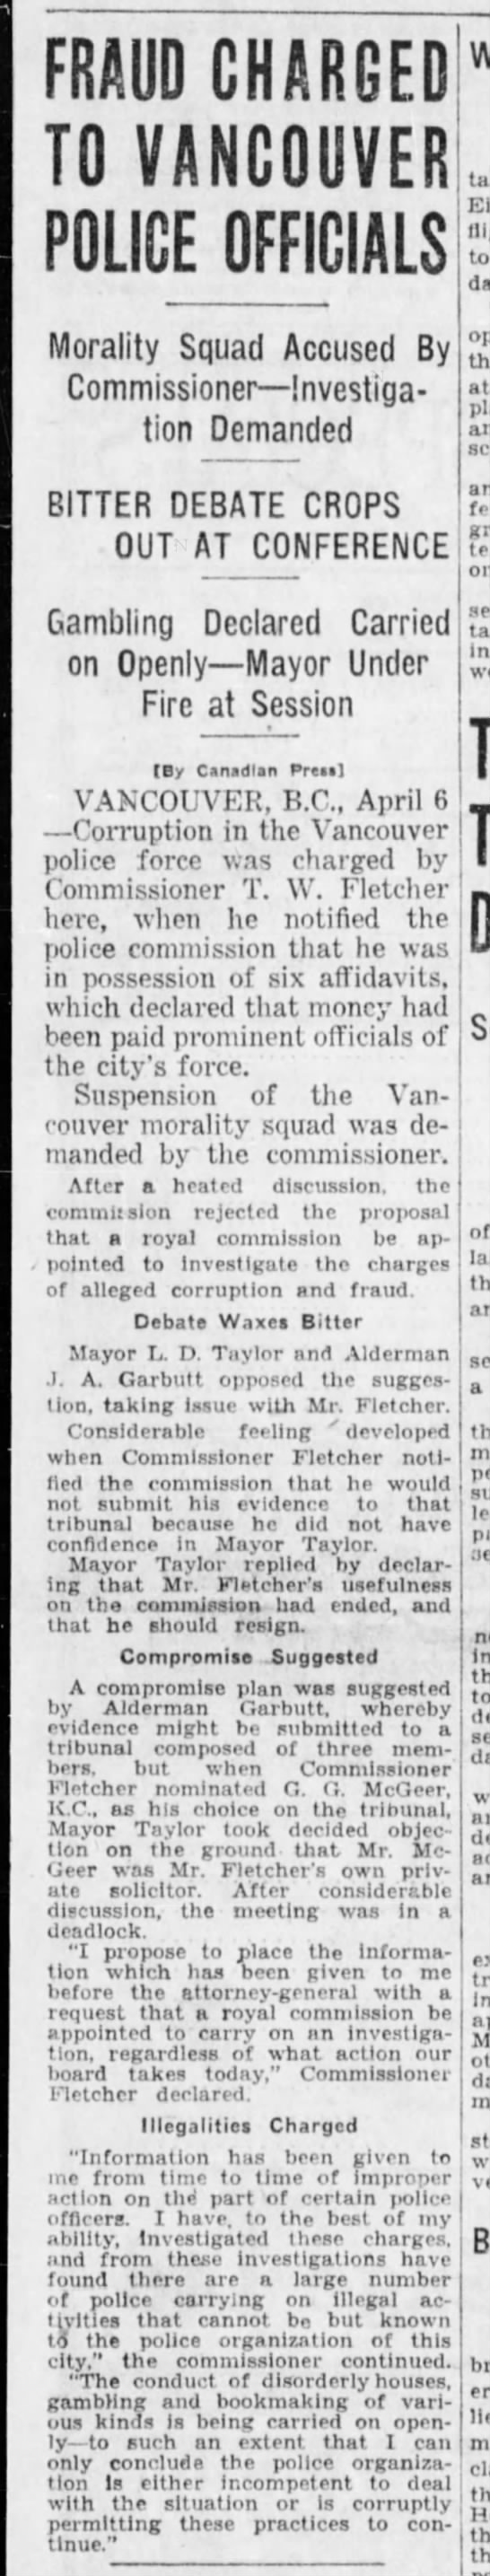 6 apr 1928 and start of Fletcher's campaign against police corruption - FRAUD CHARGED TO VANCOUVER POLICE OFFICIALS...